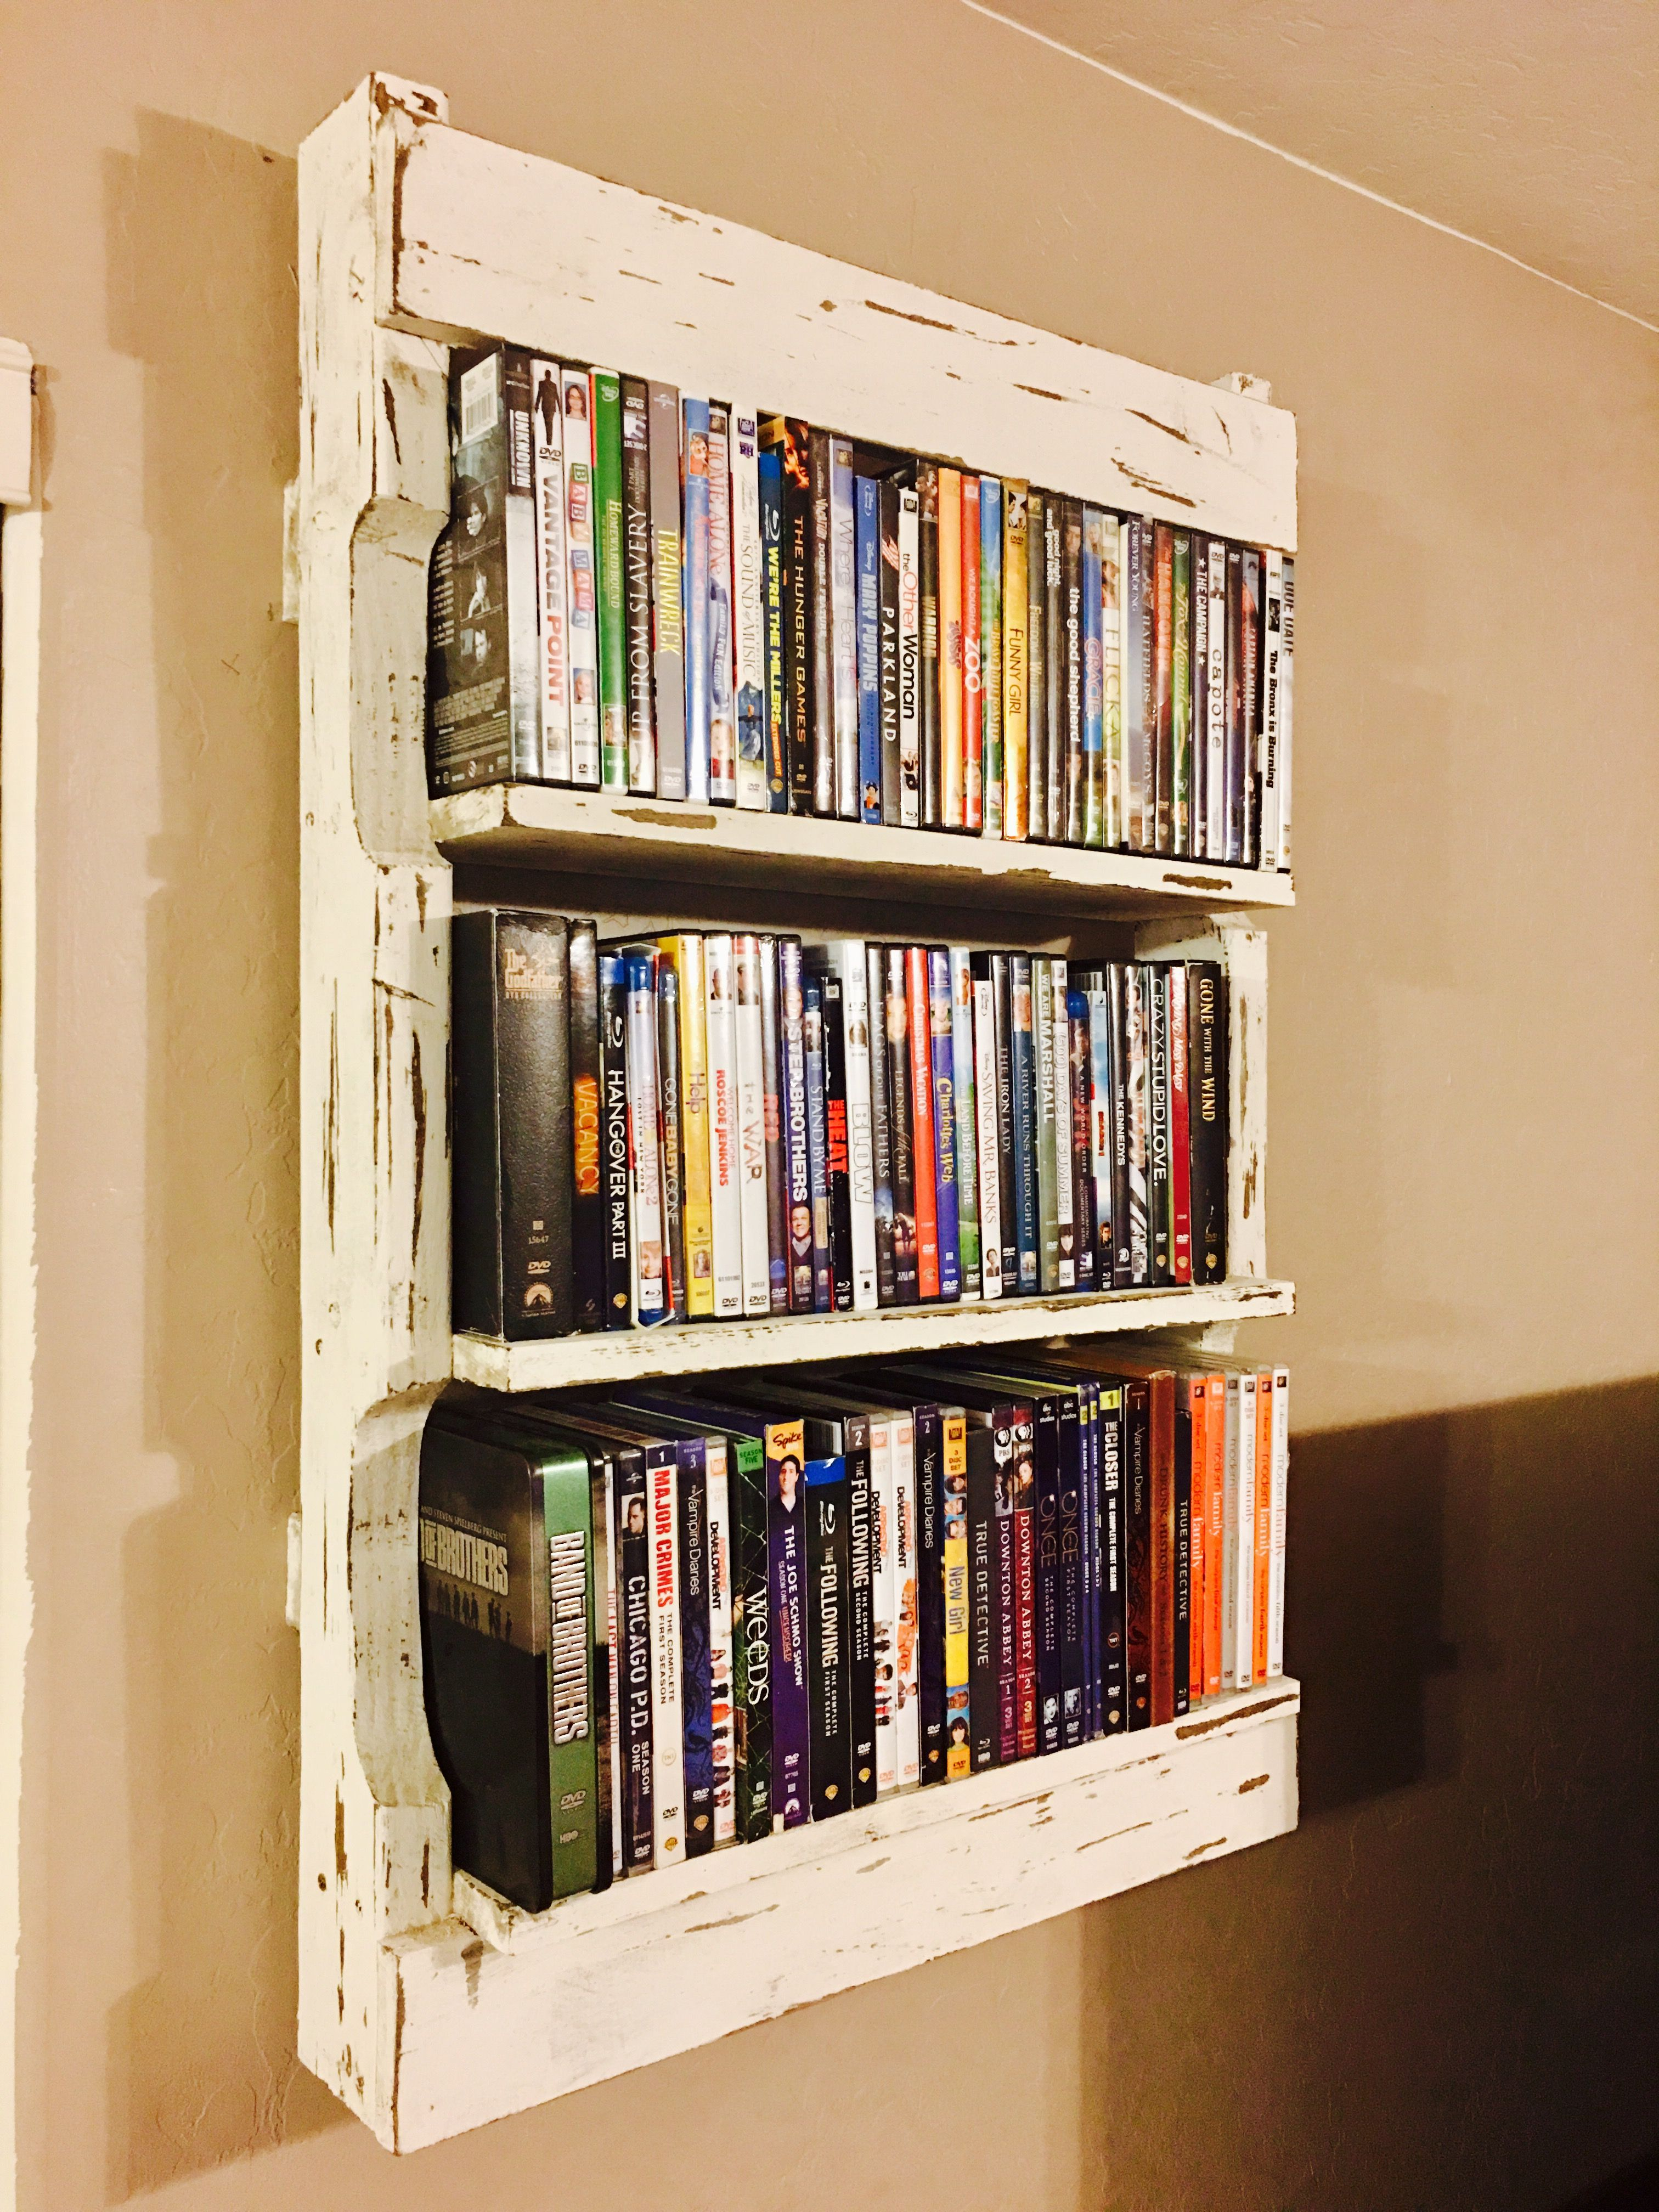 Diy Rustic Wall Pallet Shelves Dvd' - Easy & Under